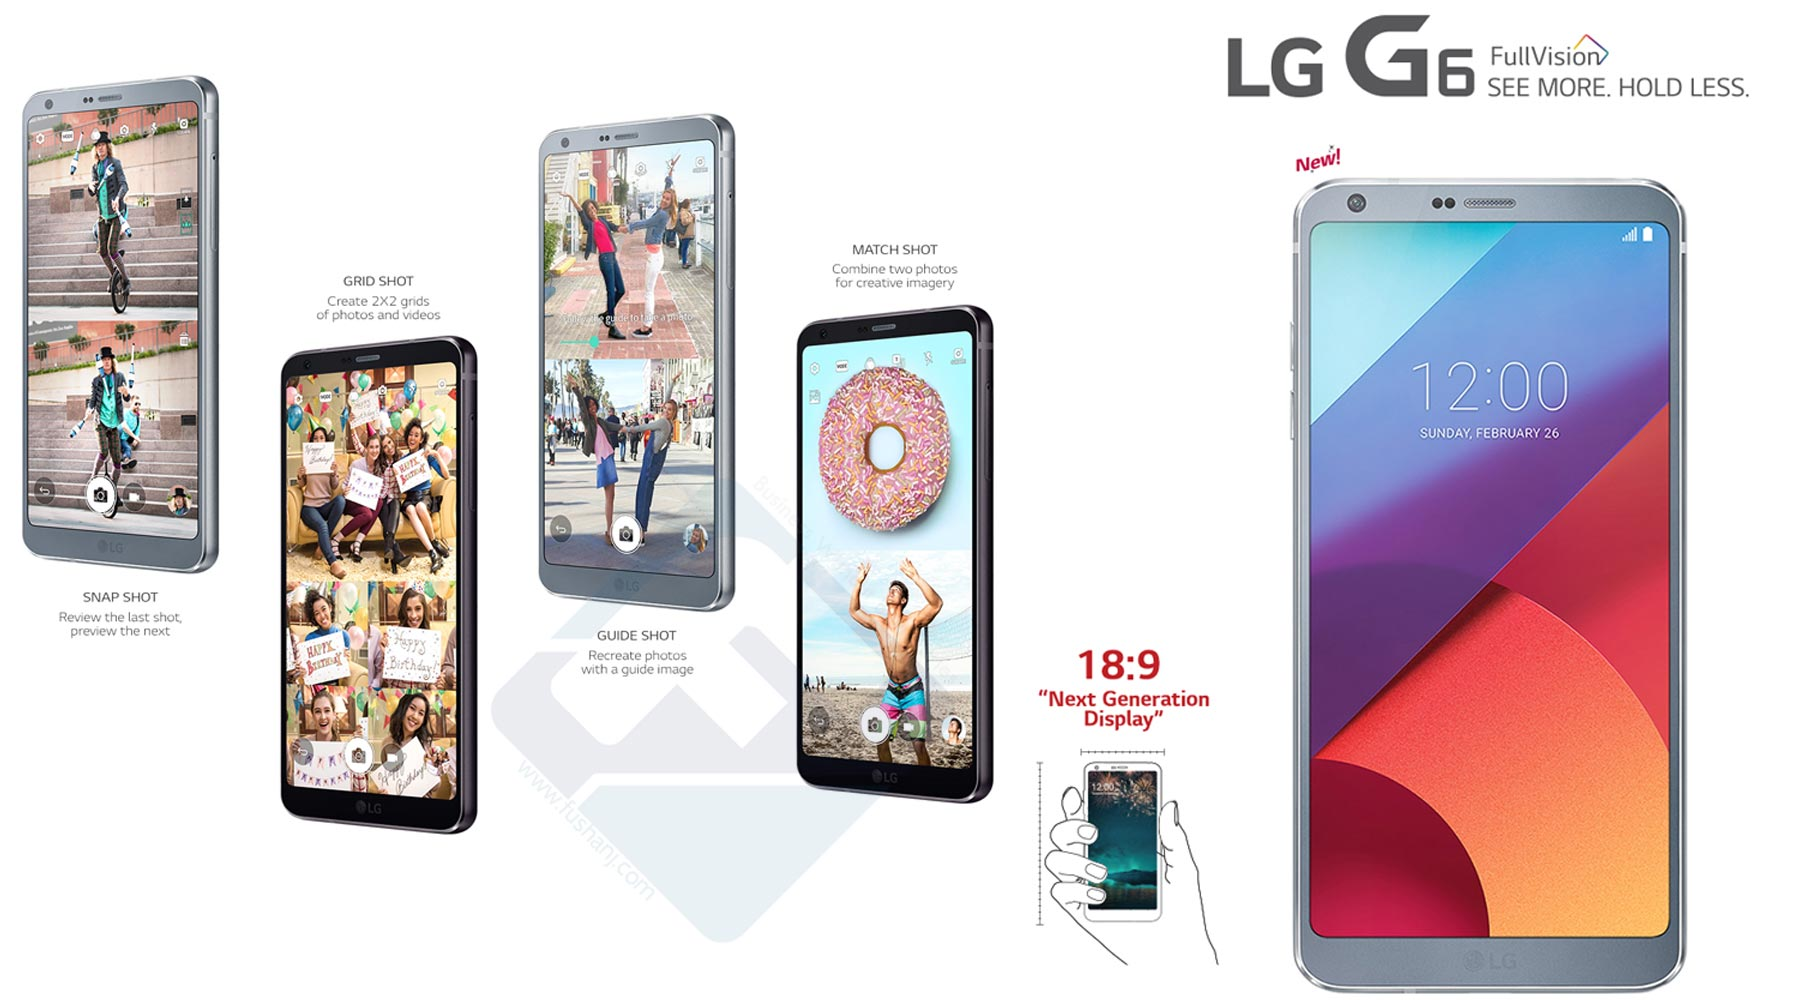 LG G6 Fingerprint Dual Camera 4G LTE Best Price Dubai UAE